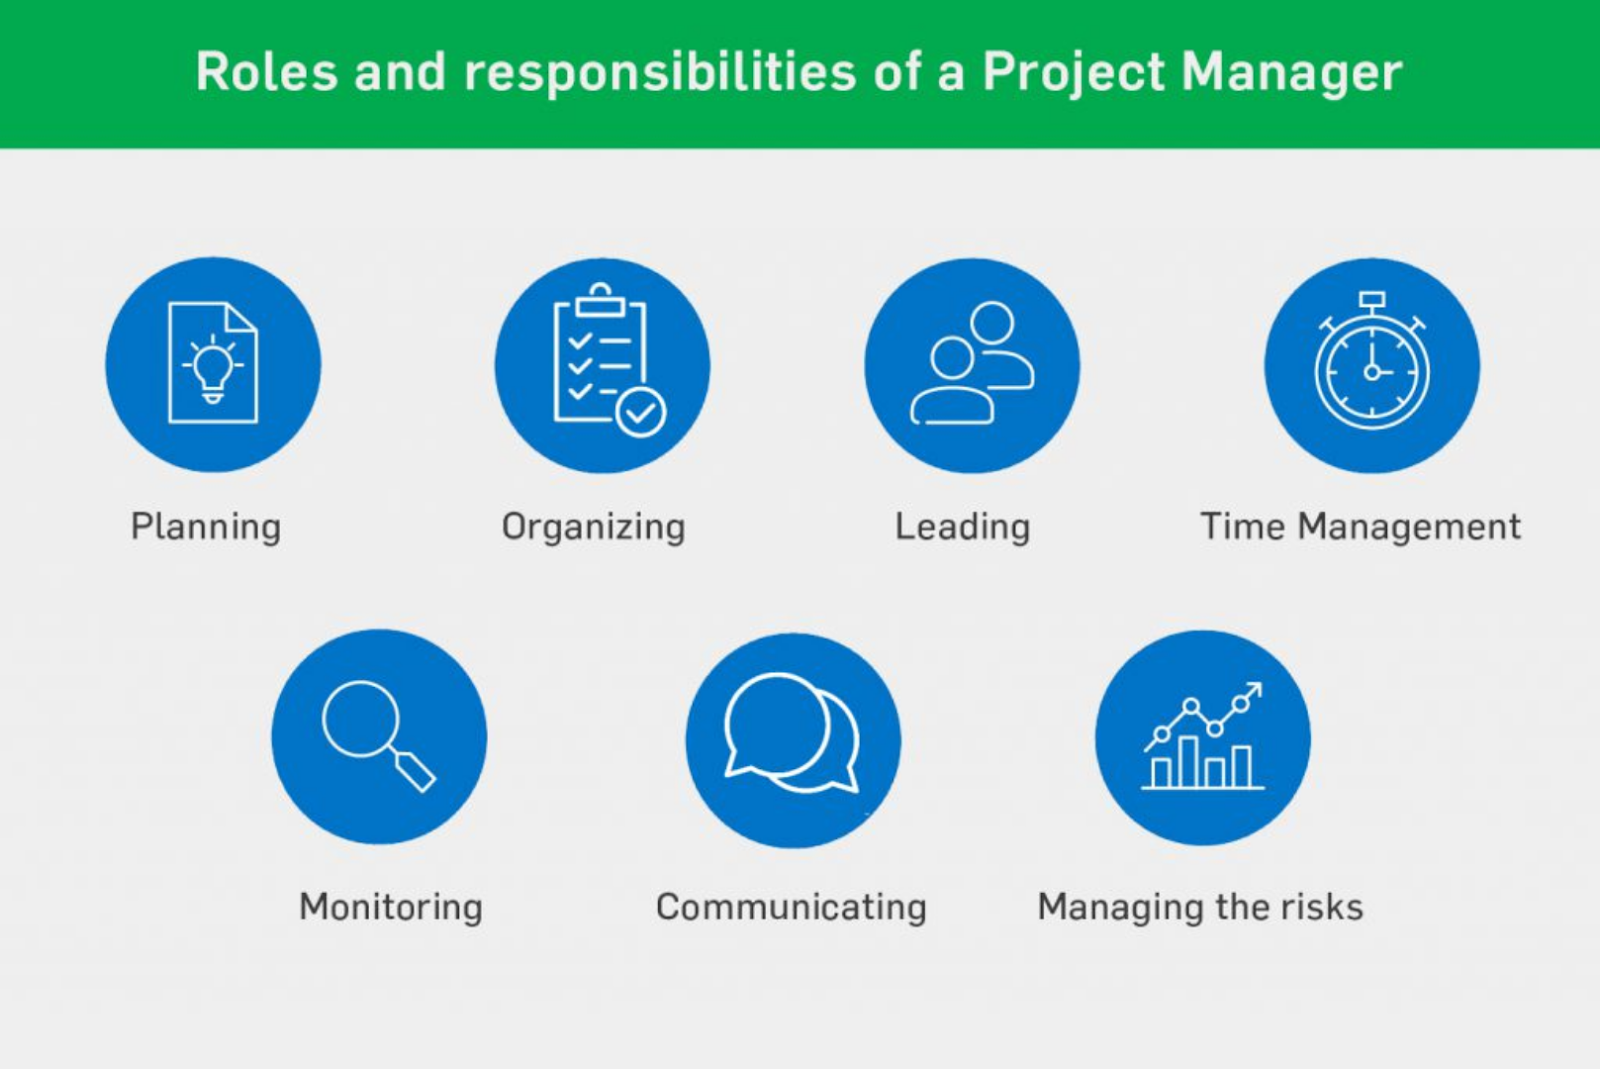 Role and responsibilities of a Project Manager